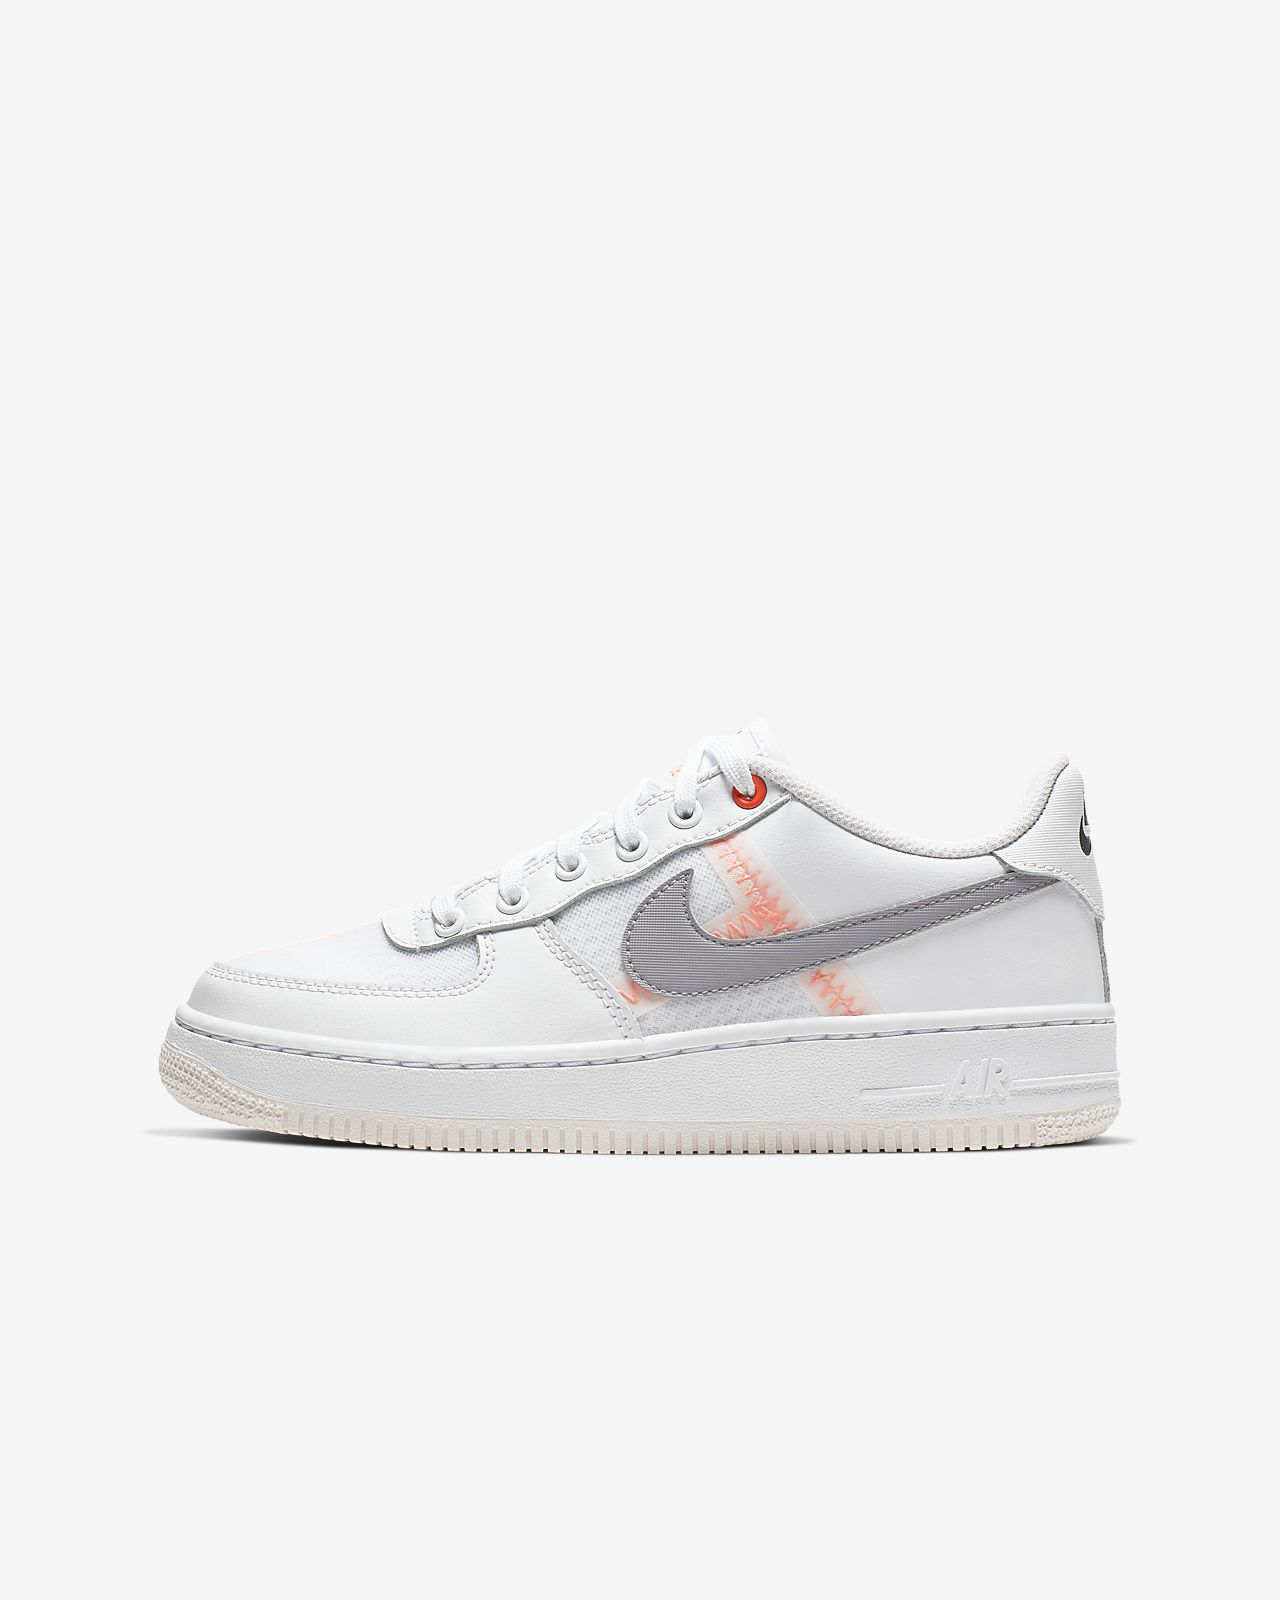 nouveau style 4eed1 19aed Nike Air Force 1 LV8 1 Older Kids' Shoe